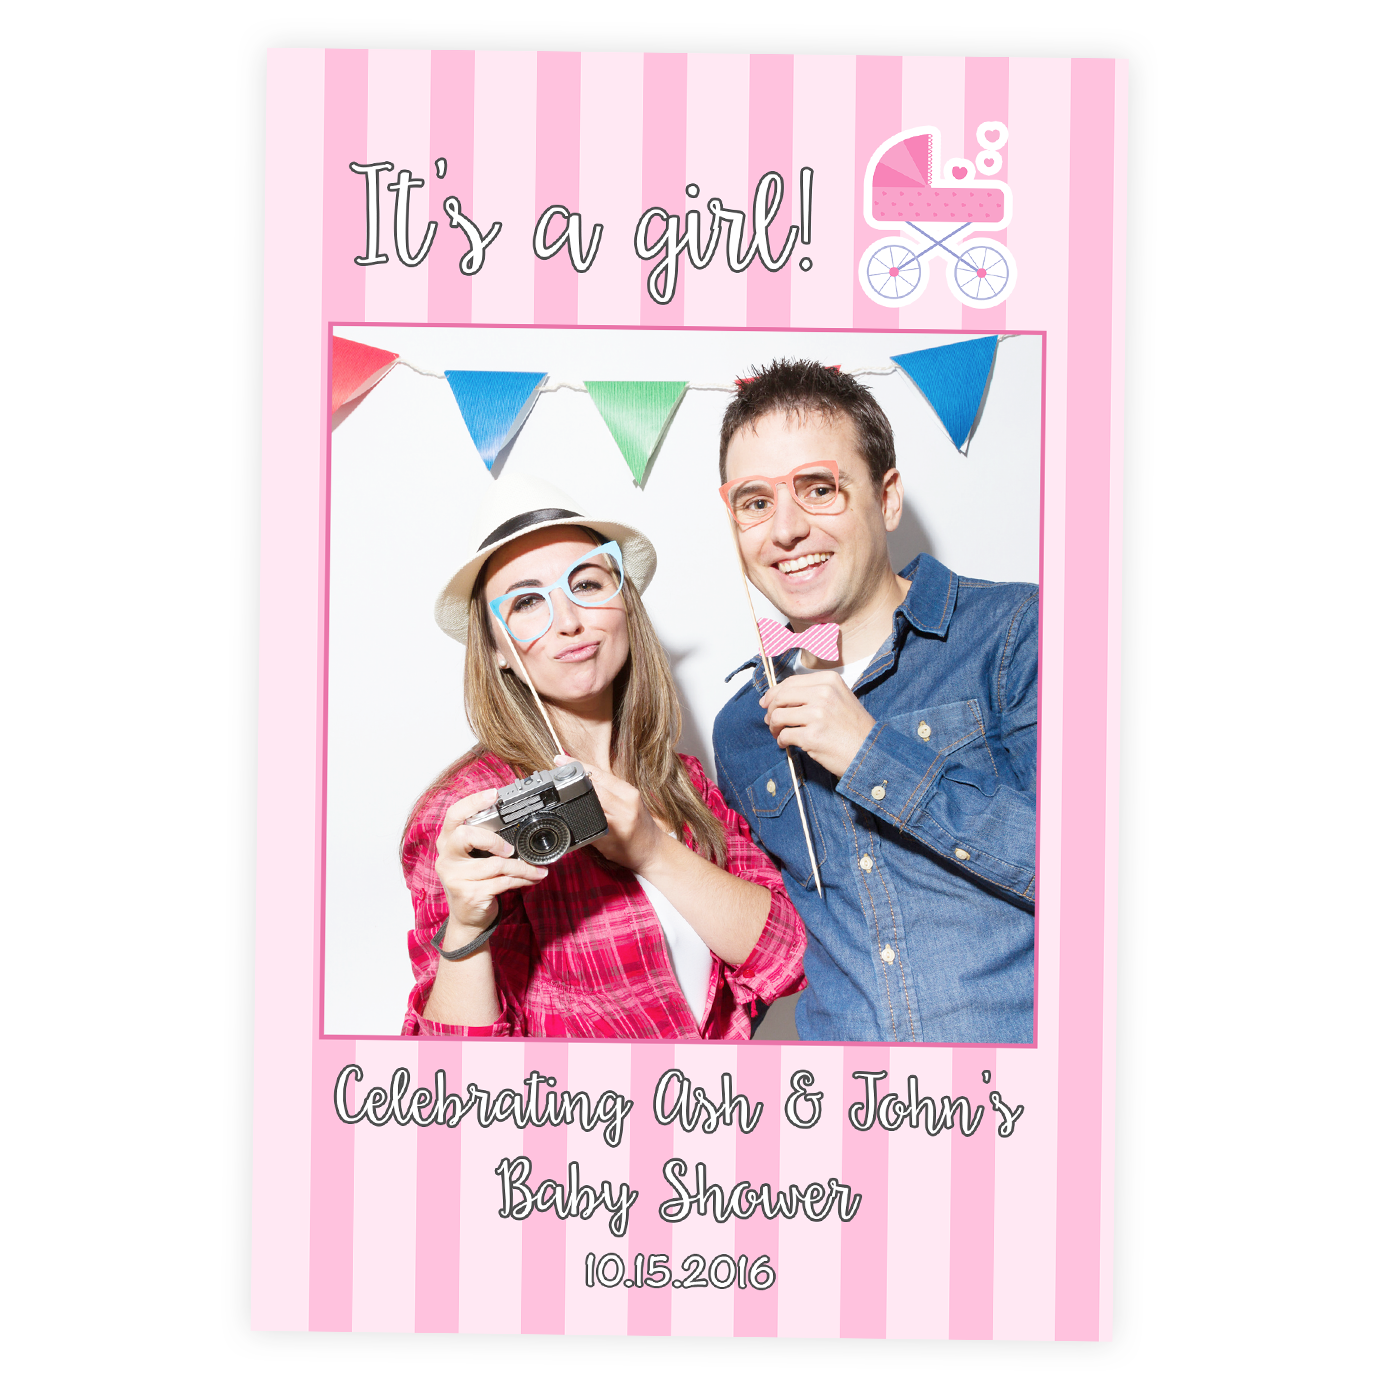 1400x1400 Baby Shower Selfie Frame Cutout Its A Girl Photo Booth Prop